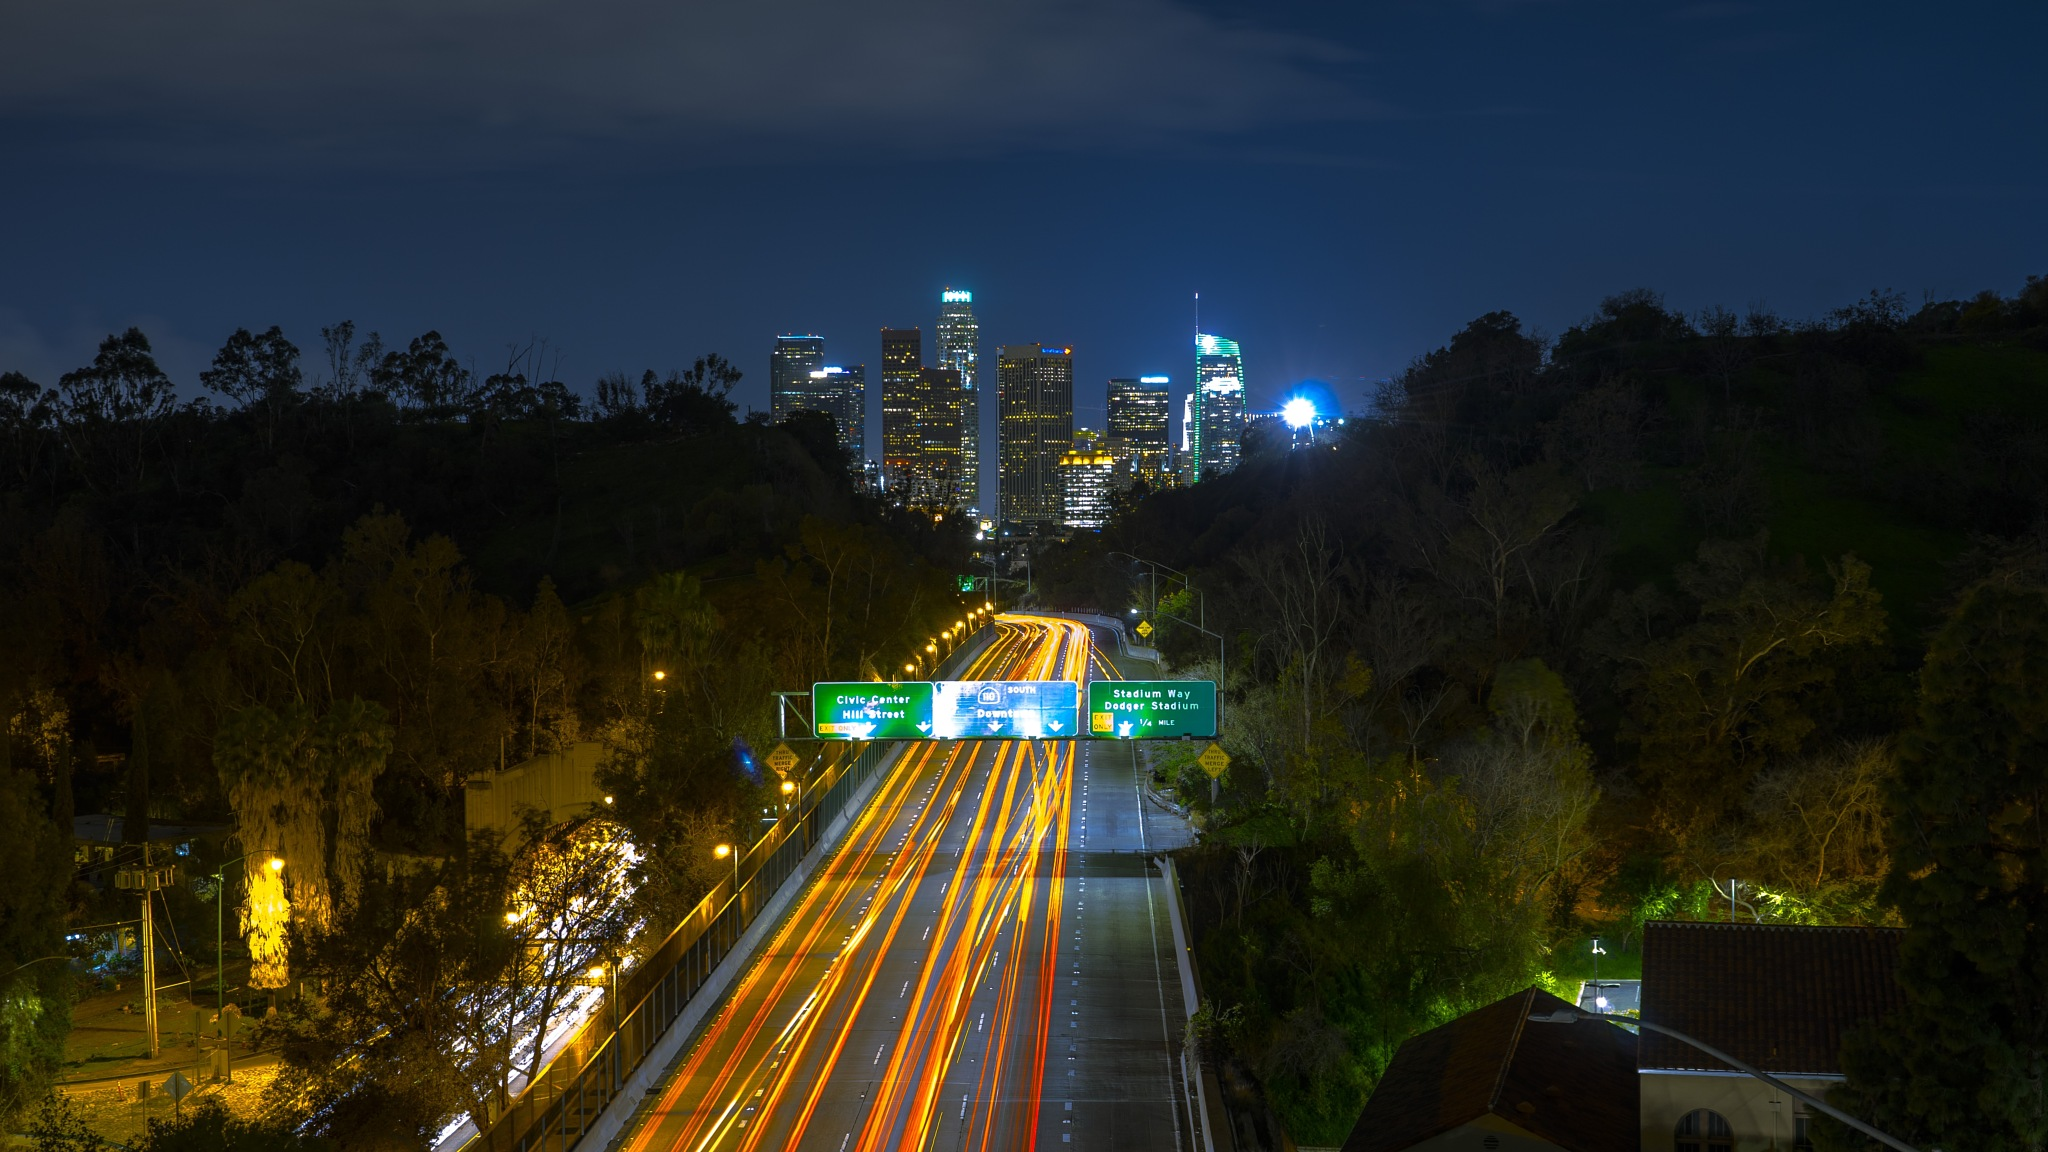 Going to Downtown LA by Kim Christopher Legaspi